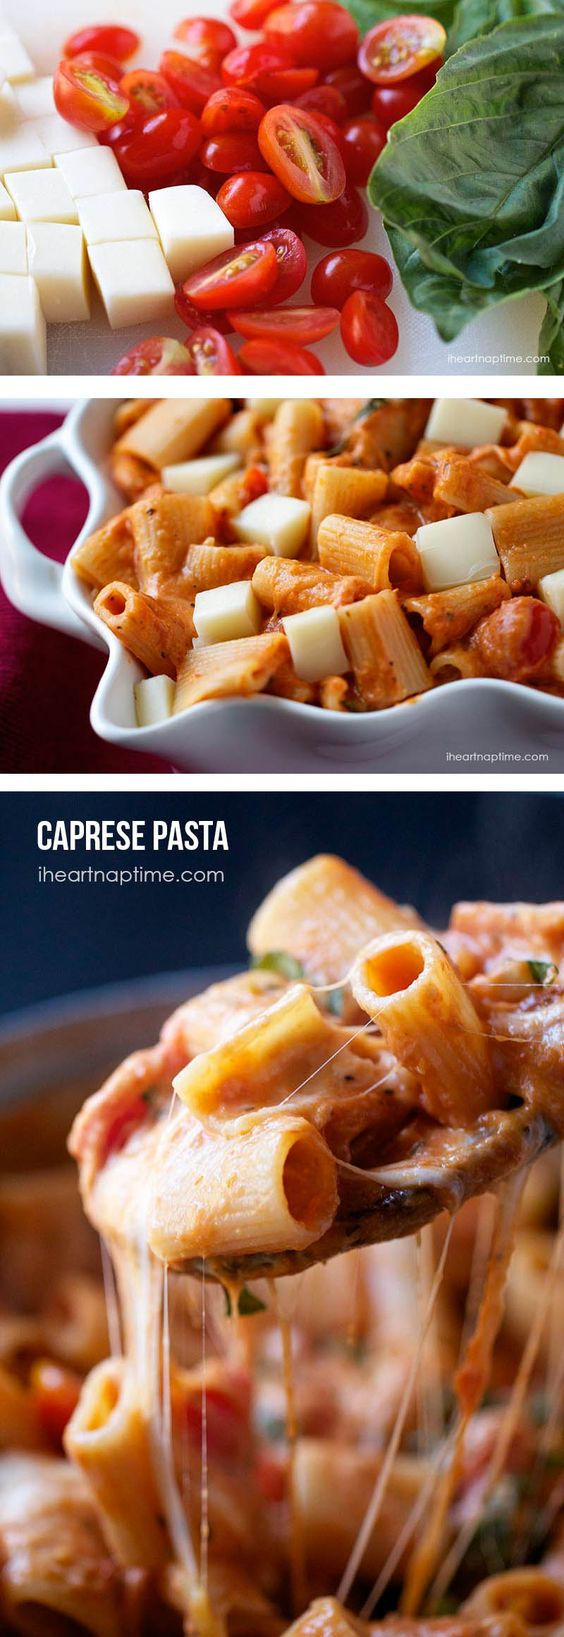 Creamy caprese pasta on iheartnaptime.com ...This recipe is so delicious and will soon become a new family favorite!